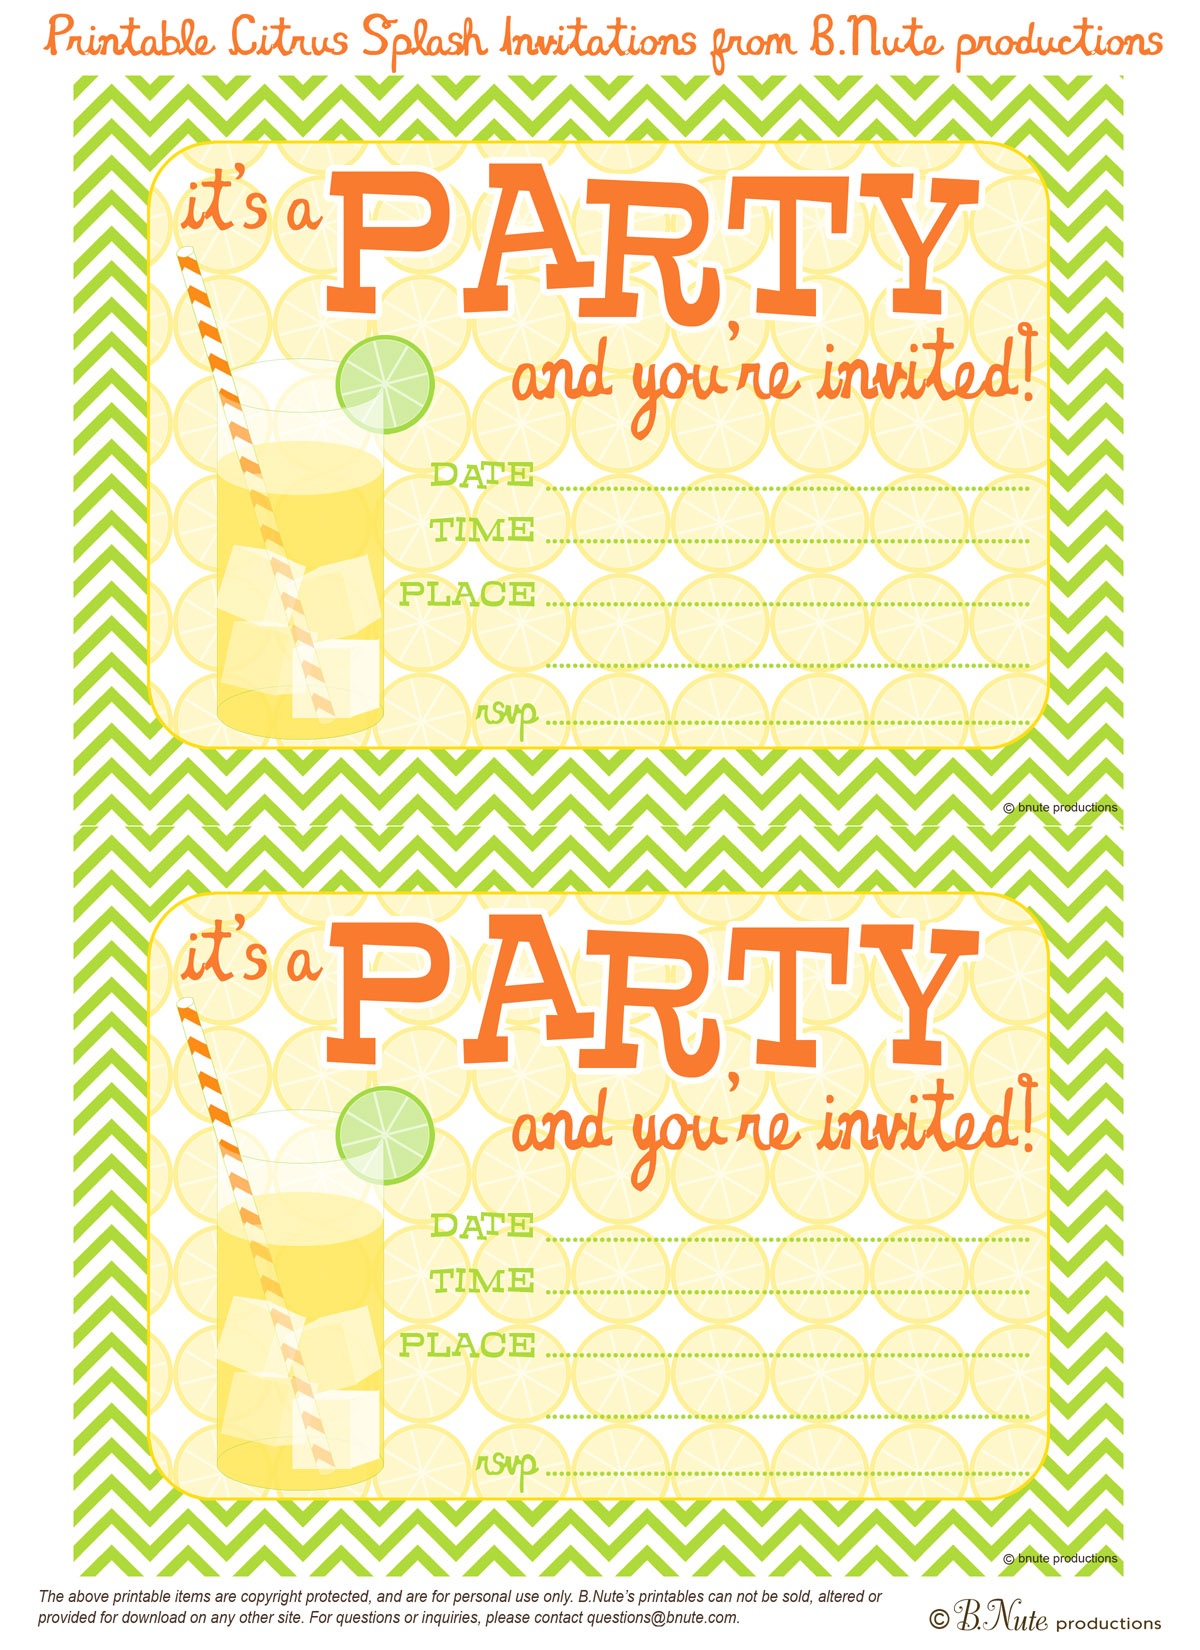 bnute productions printable citrus splash invitations printable citrus splash party invitations from b nute productions